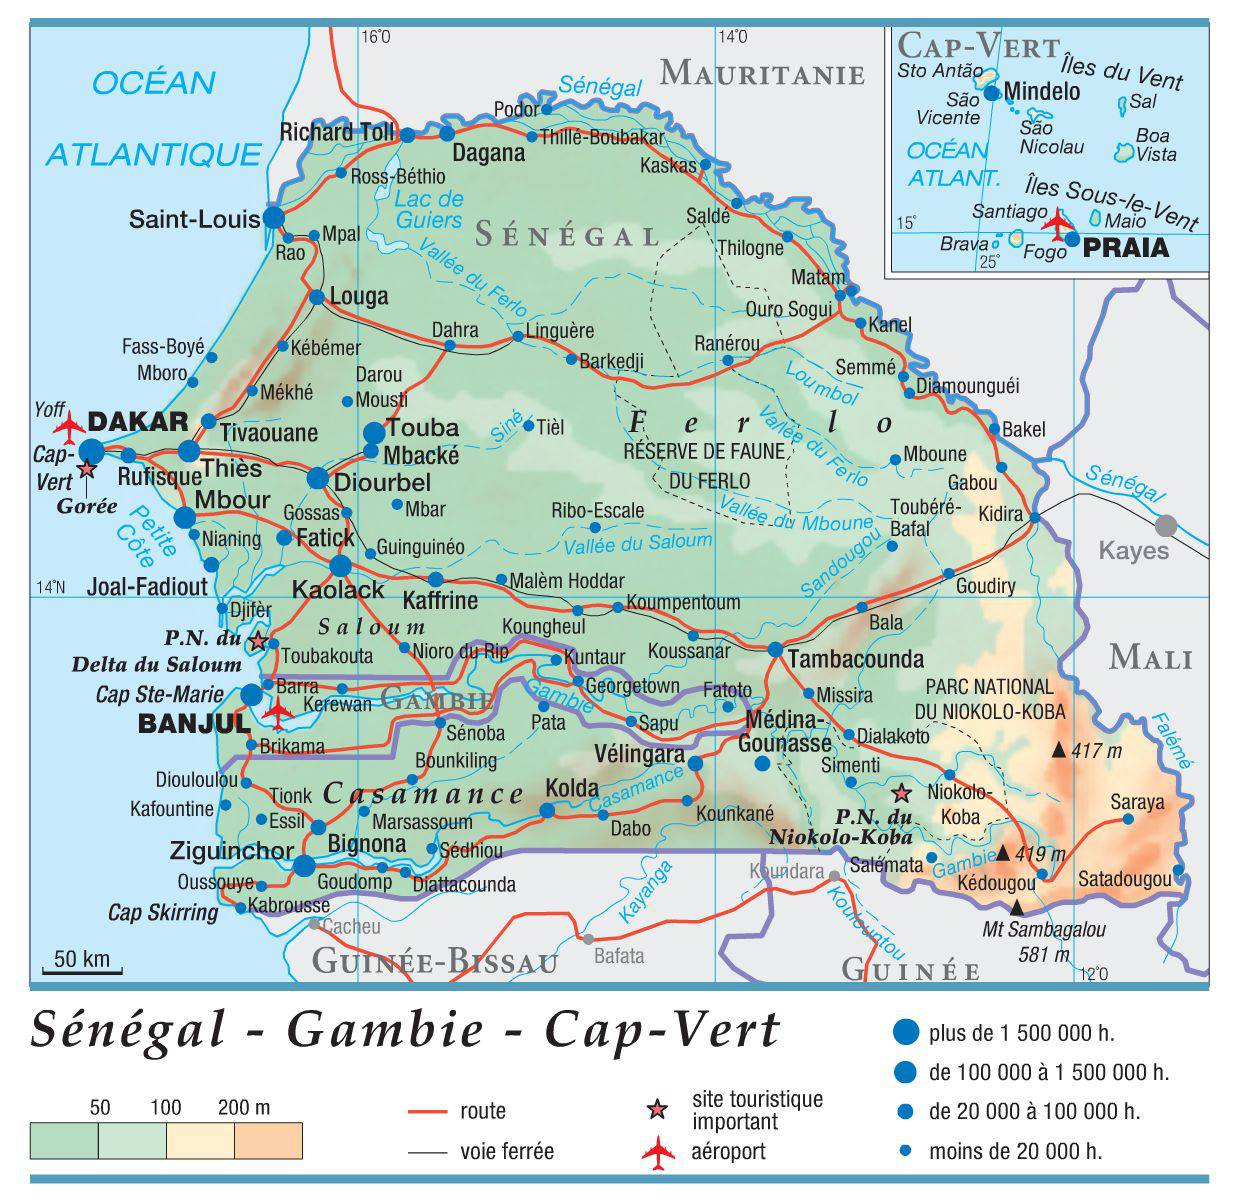 Carte du Sénégal